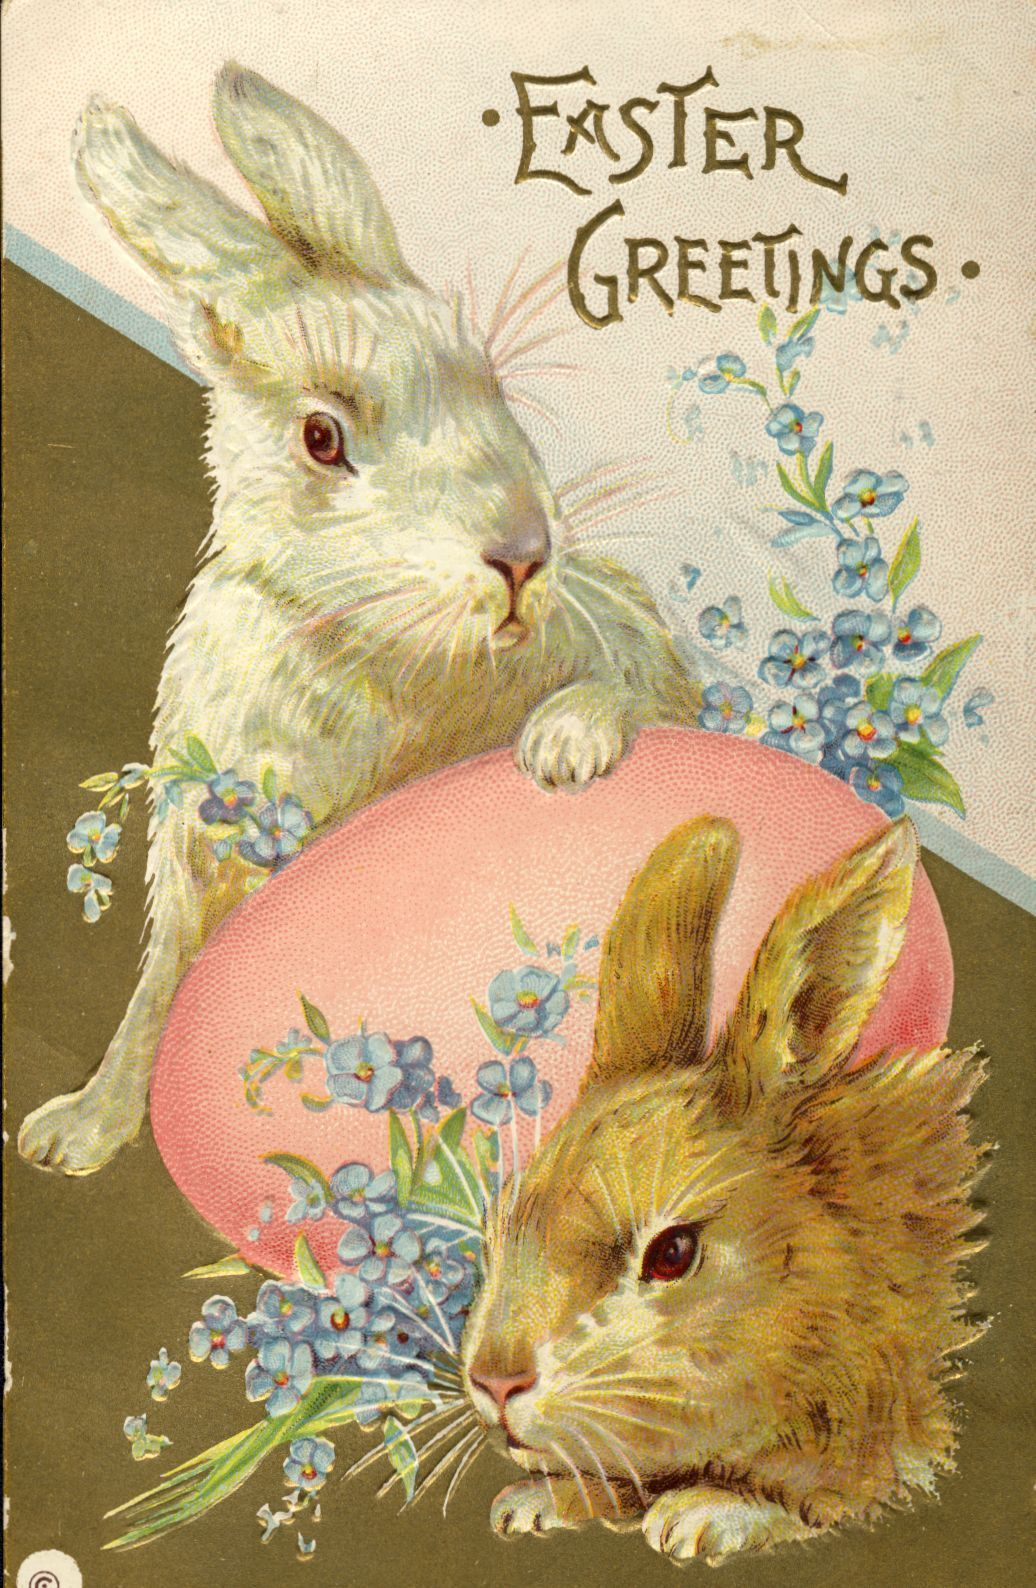 Easter Greetings Postcard Rabbits Egg By Unknown Printer In